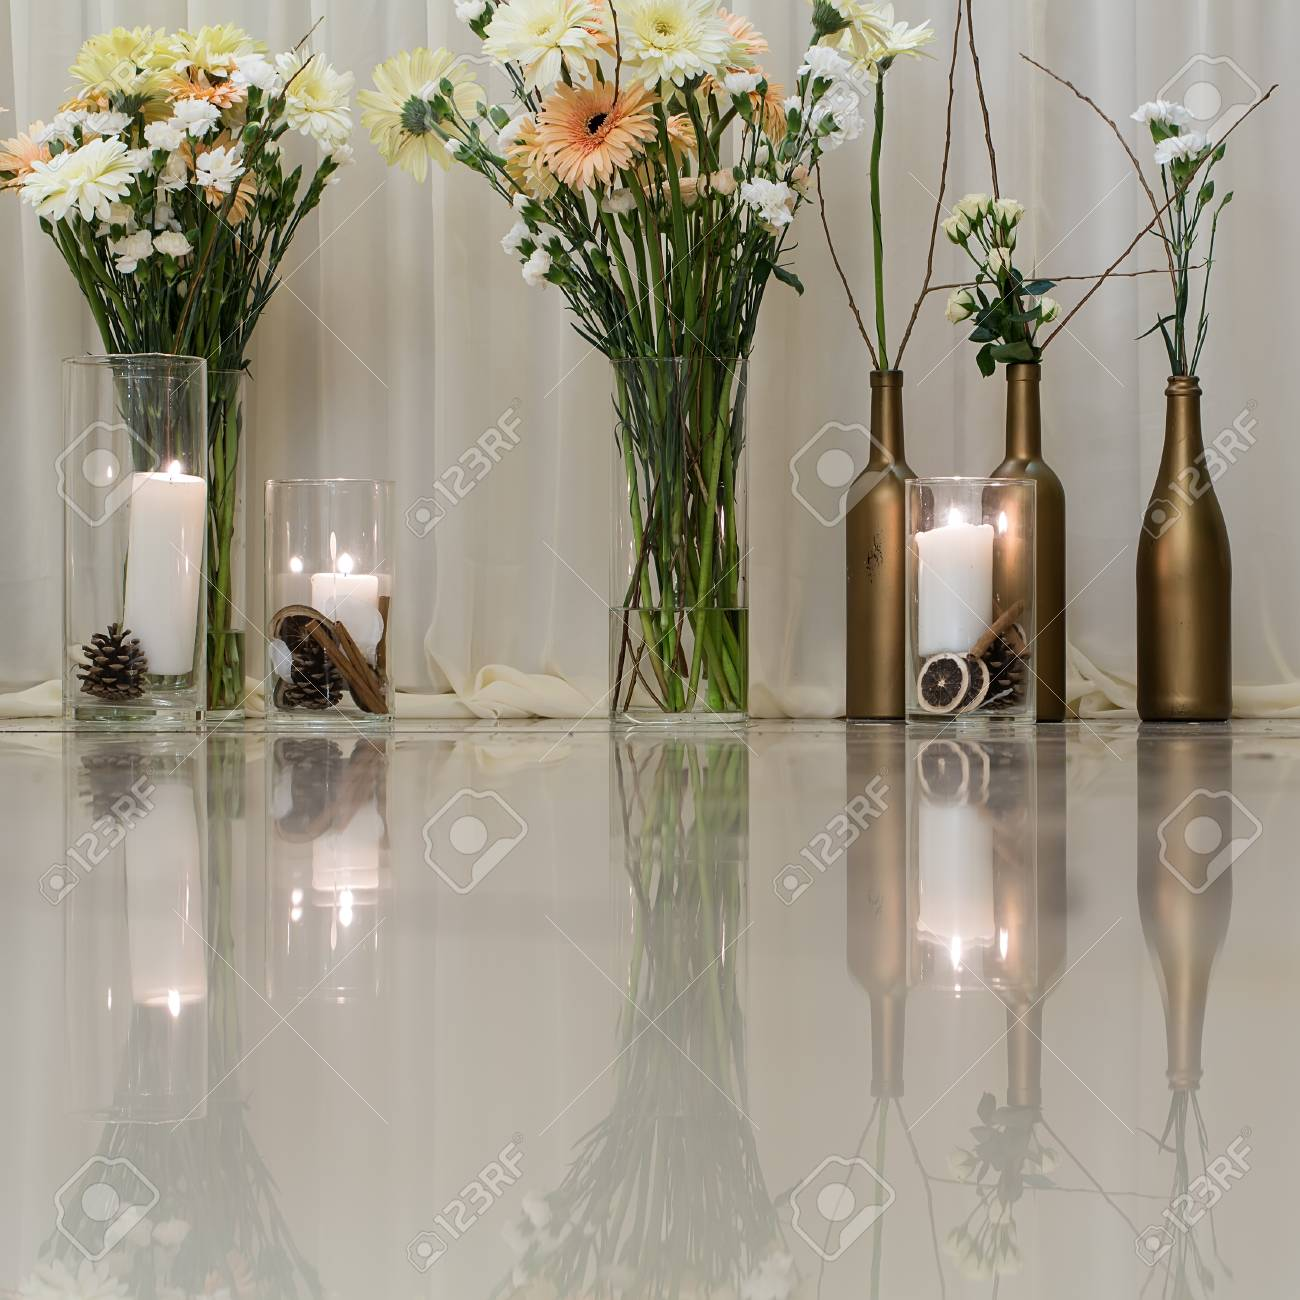 Flowers Flowers Bunches In Glass Vases And Wine Bottles And Stock